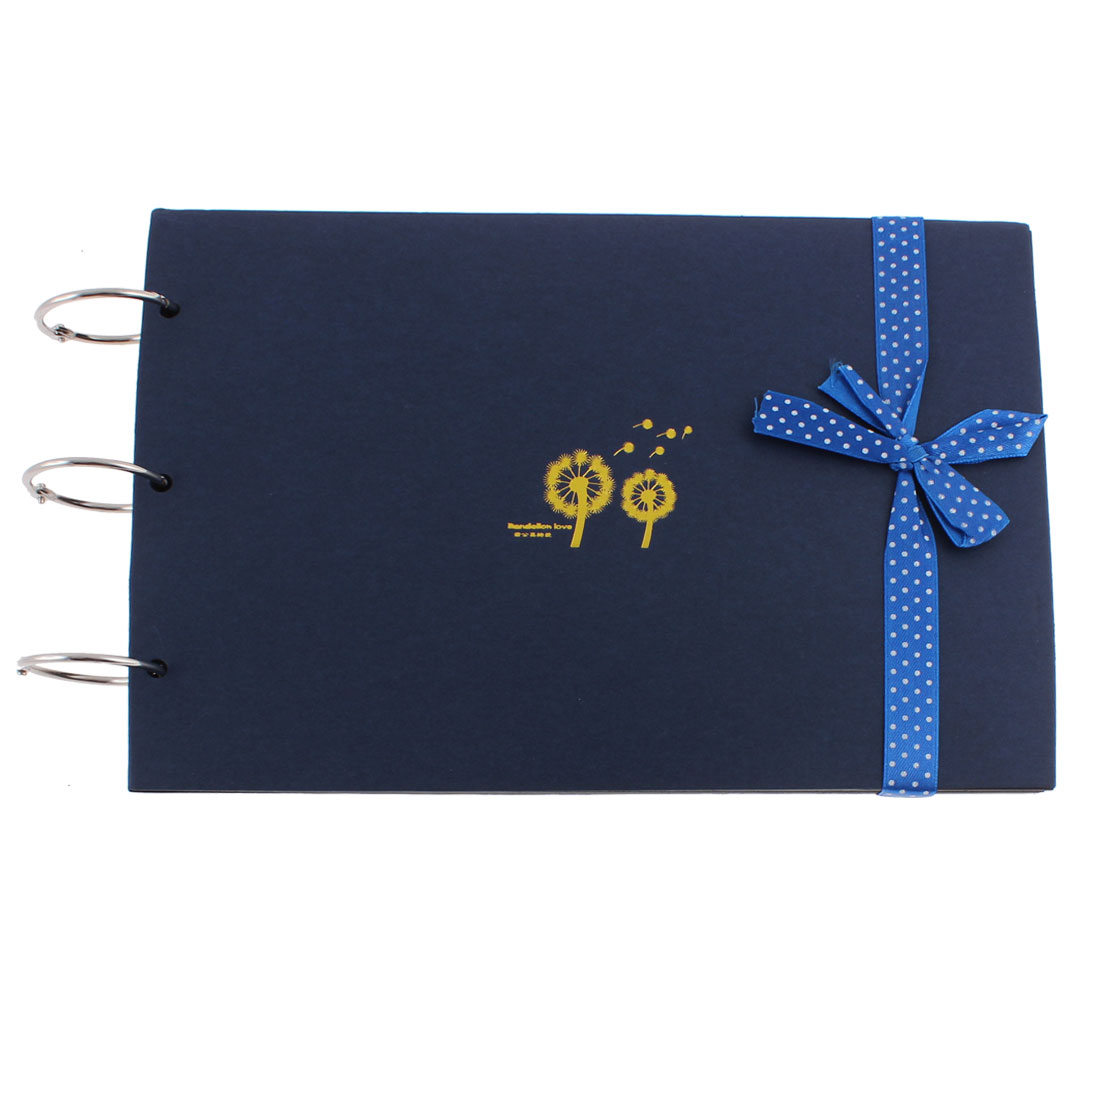 Dandelion Print DIY Travel Love Memory Photo Album Scrapbook Gift Blue